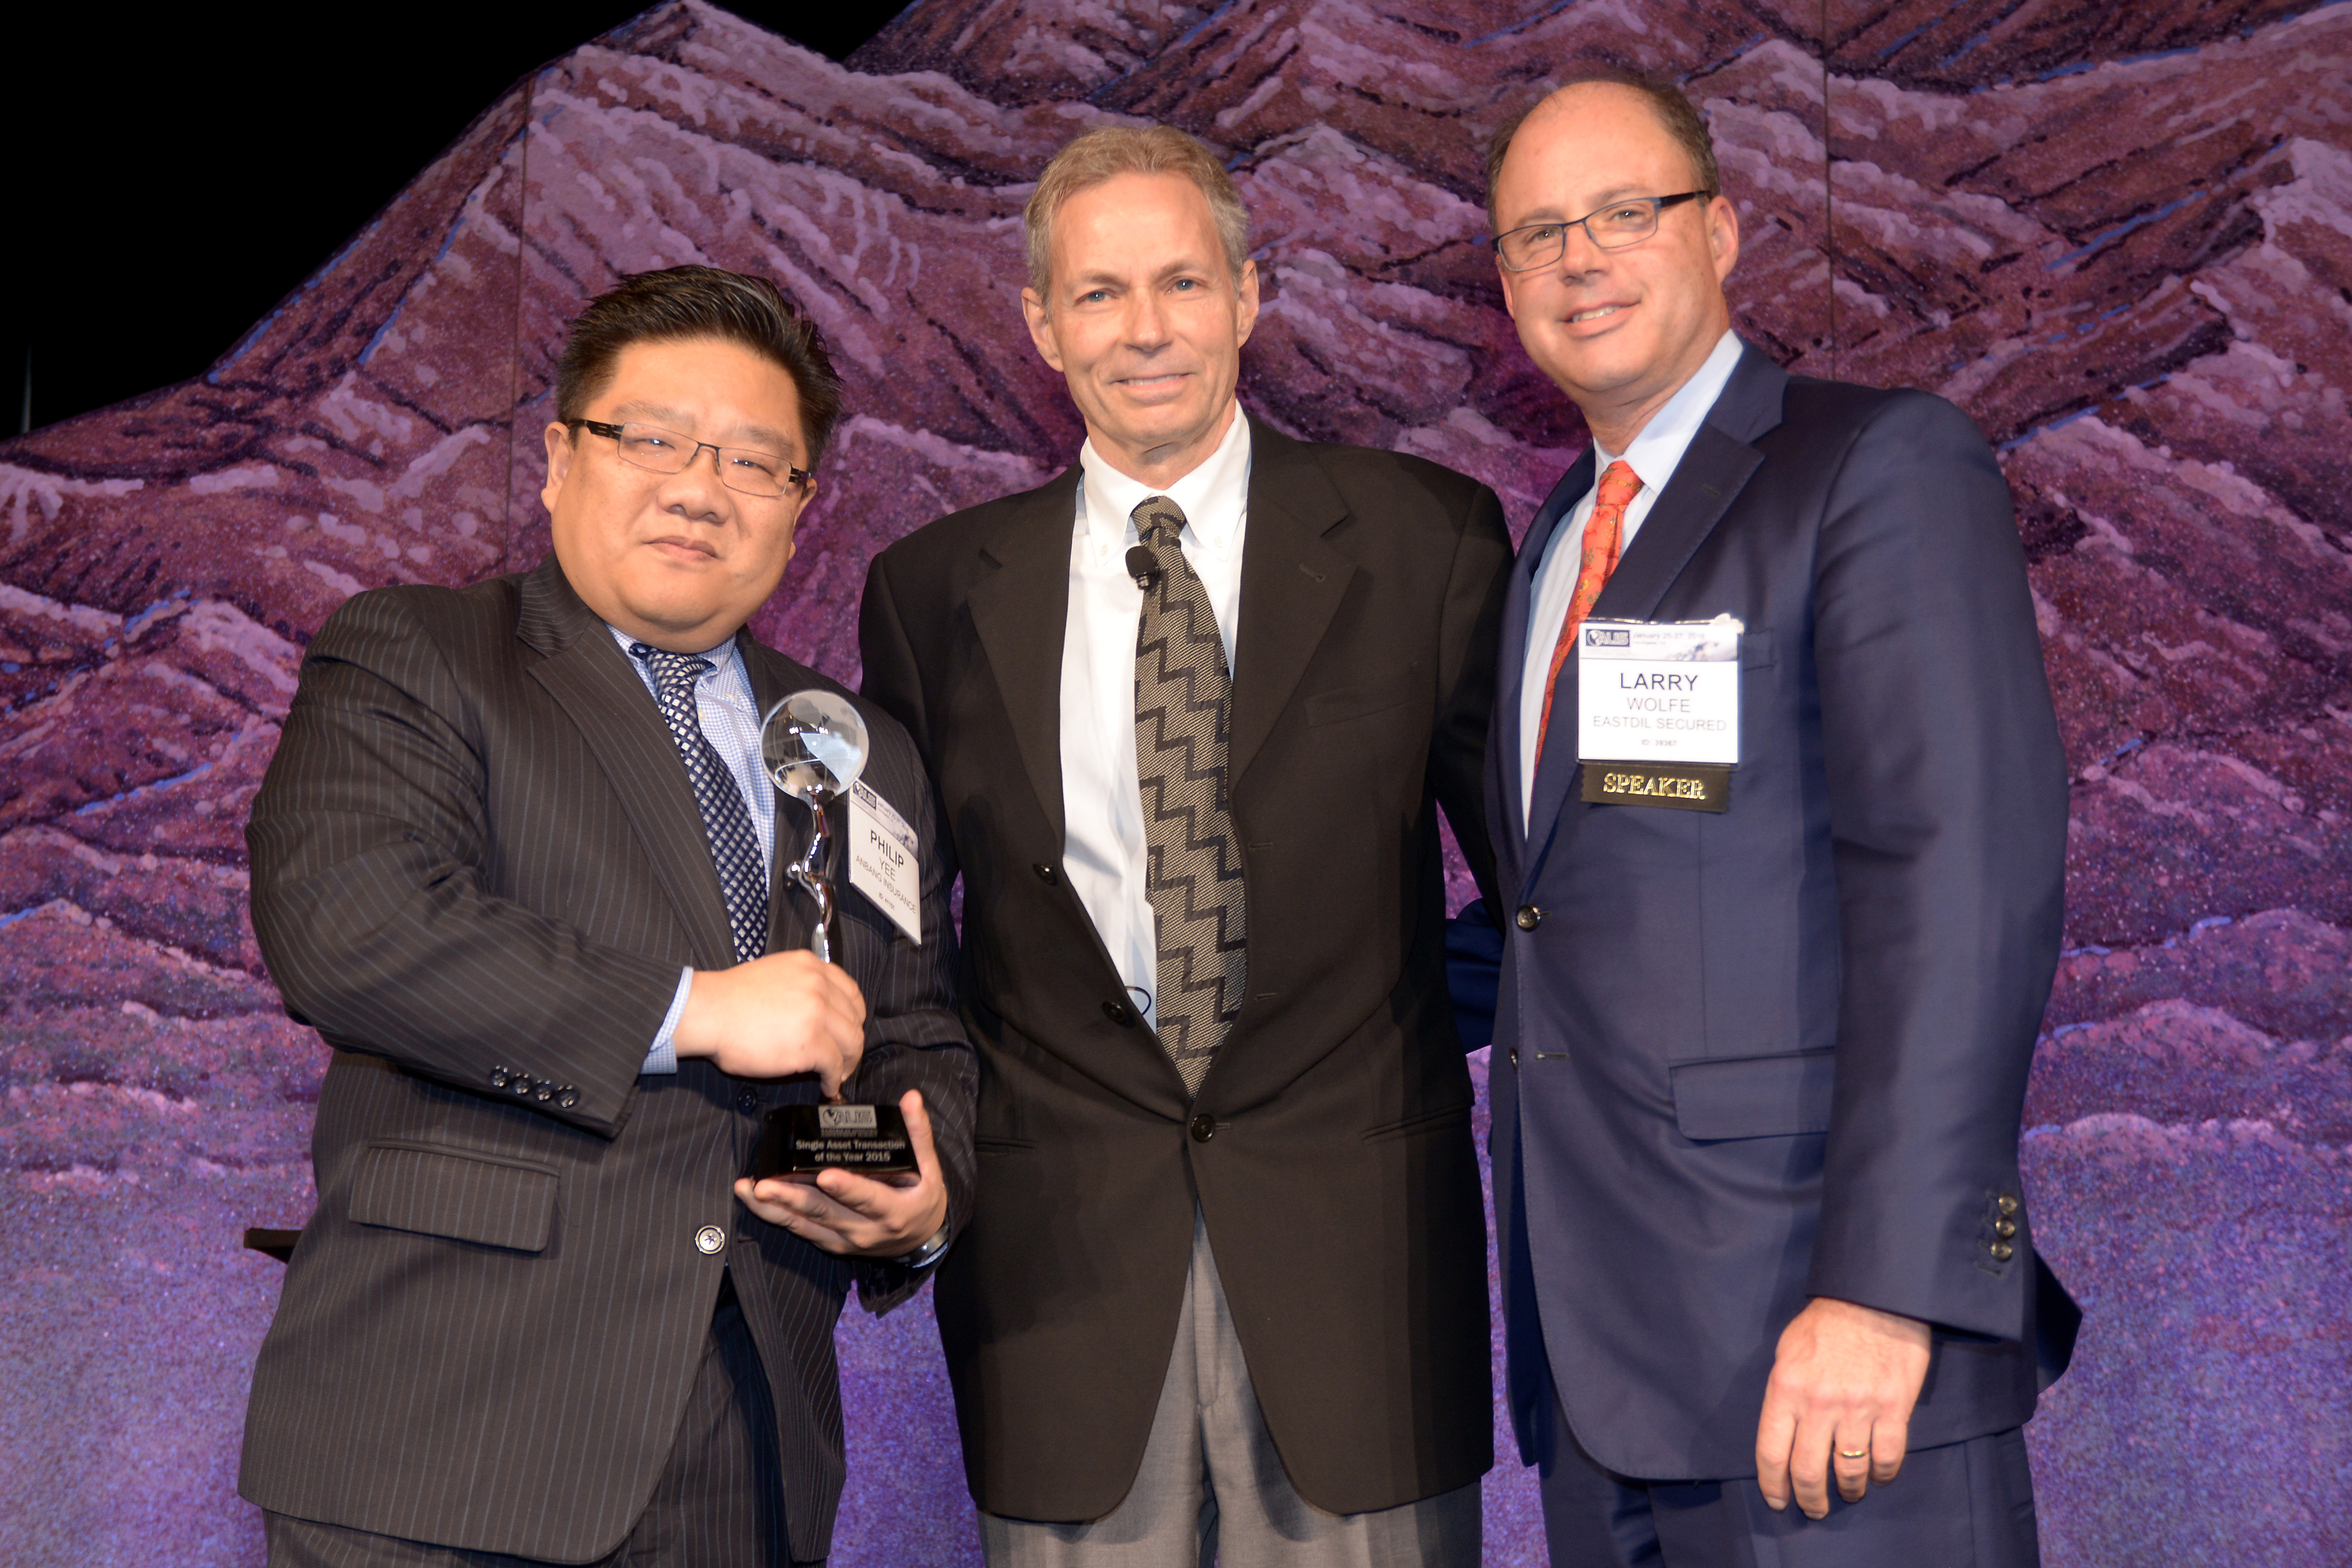 Pictured left to right are Philip Yee, Managing Director, Anbang Insurance Group; John R. Karver, SVP, CBRE Hotels; and Lawrence B. Wolfe, Senior Managing Director, Eastdil Secured